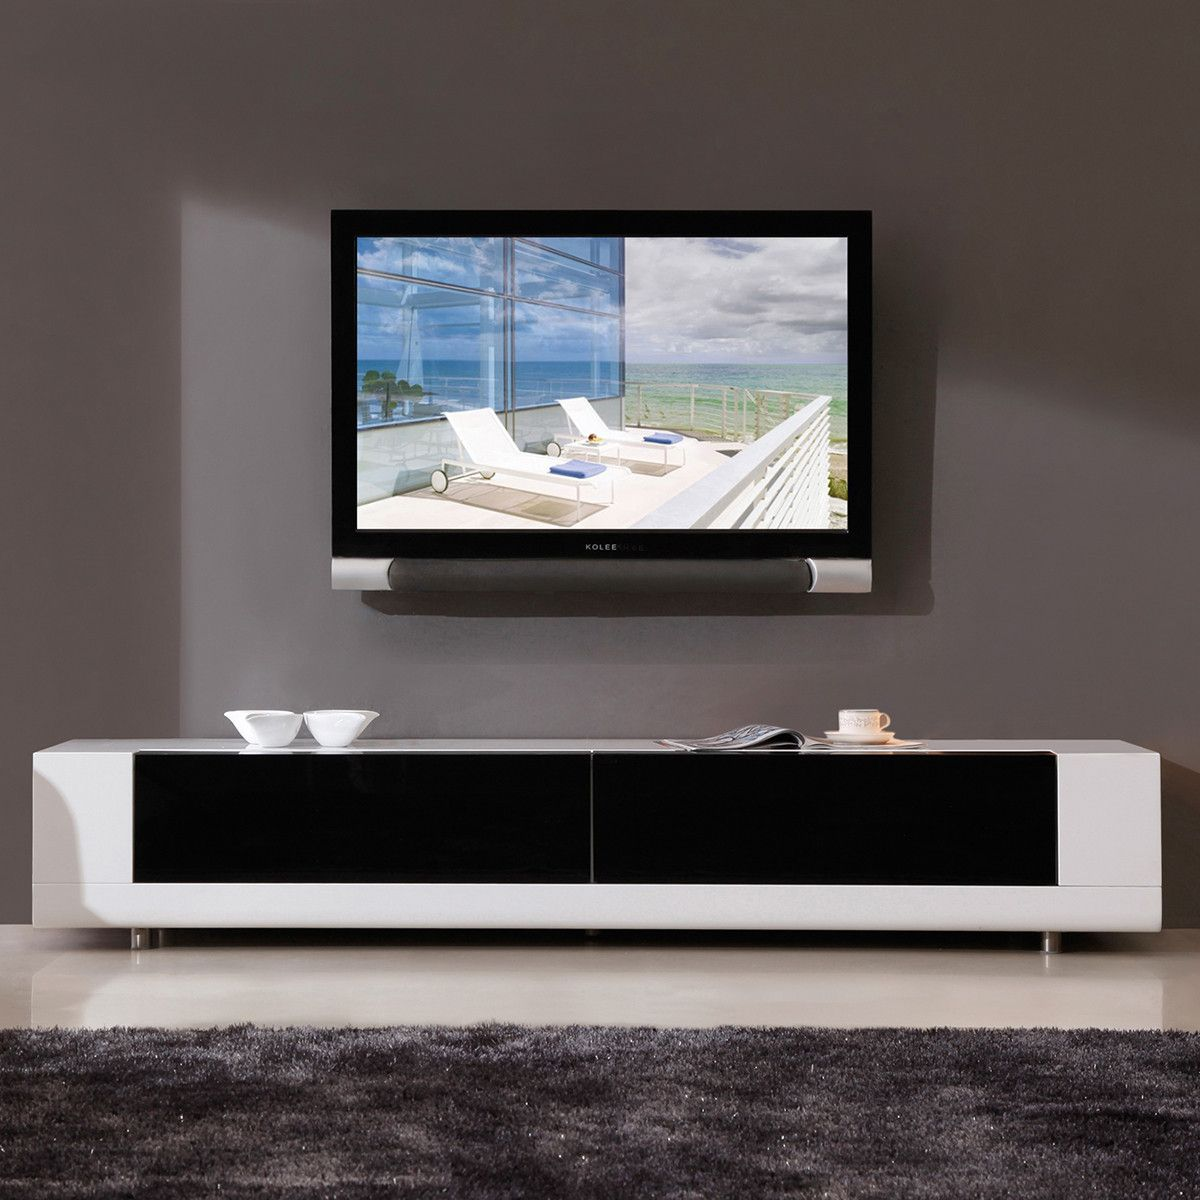 Minimalist, Modern Media Cabinet. I Love The Look Of This!